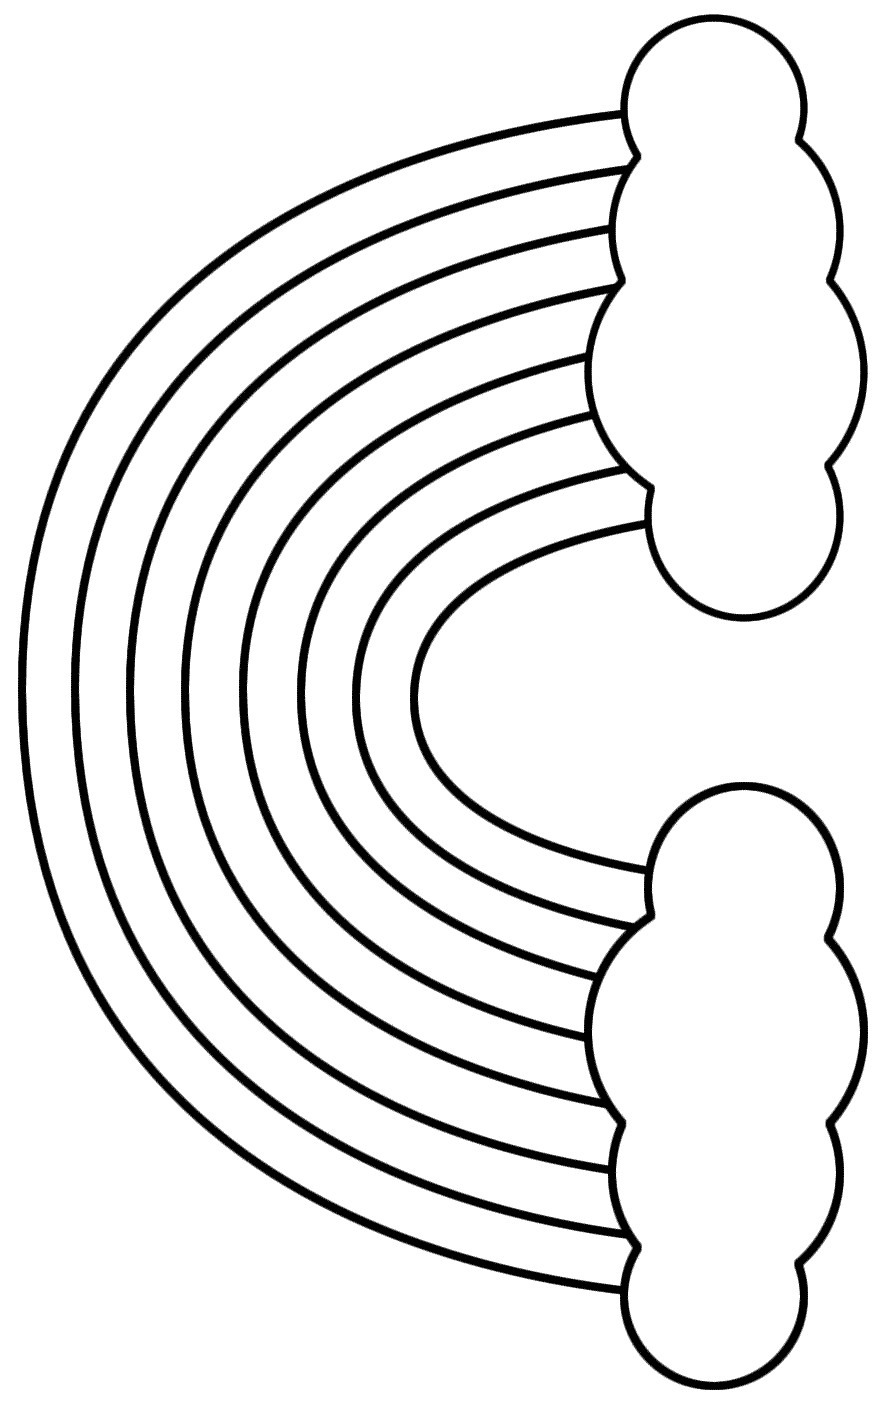 rainbow outline coloring page rainbow template rainbow coloring page rainbow outline rainbow page coloring outline